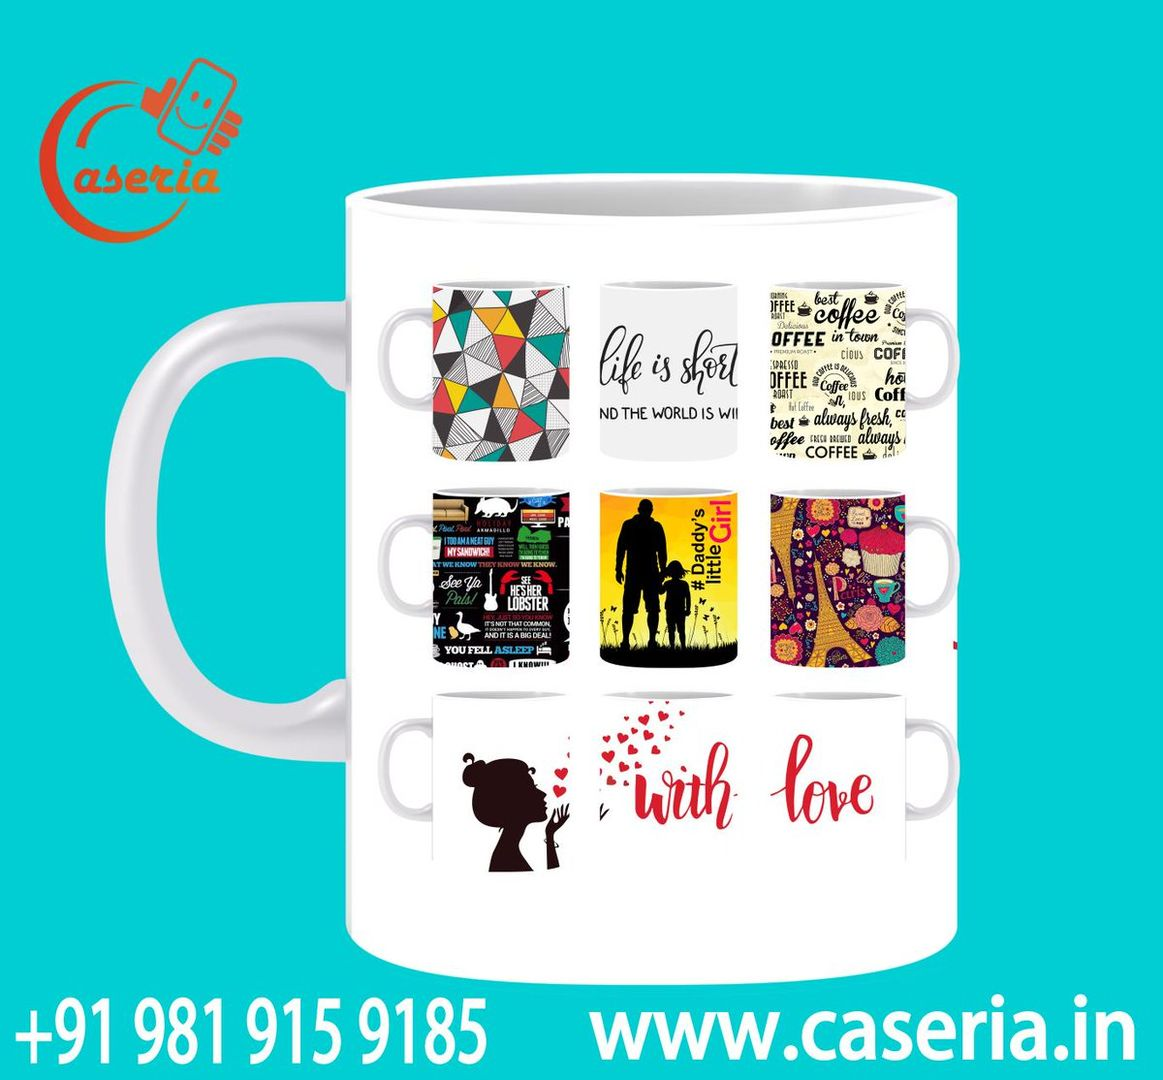 """Caseria Mobile Cases & Covers on Twitter: """"Buy latest designs Wall Stickers and Vinyl Wall Decals online. Wall Sticker collections available in variety of themes like sports, nature, abstract, animals, Kids. https://t.co/MECIX8K0bT #wallstickers #walldecals… https://t.co/oG6jdgyohp"""""""